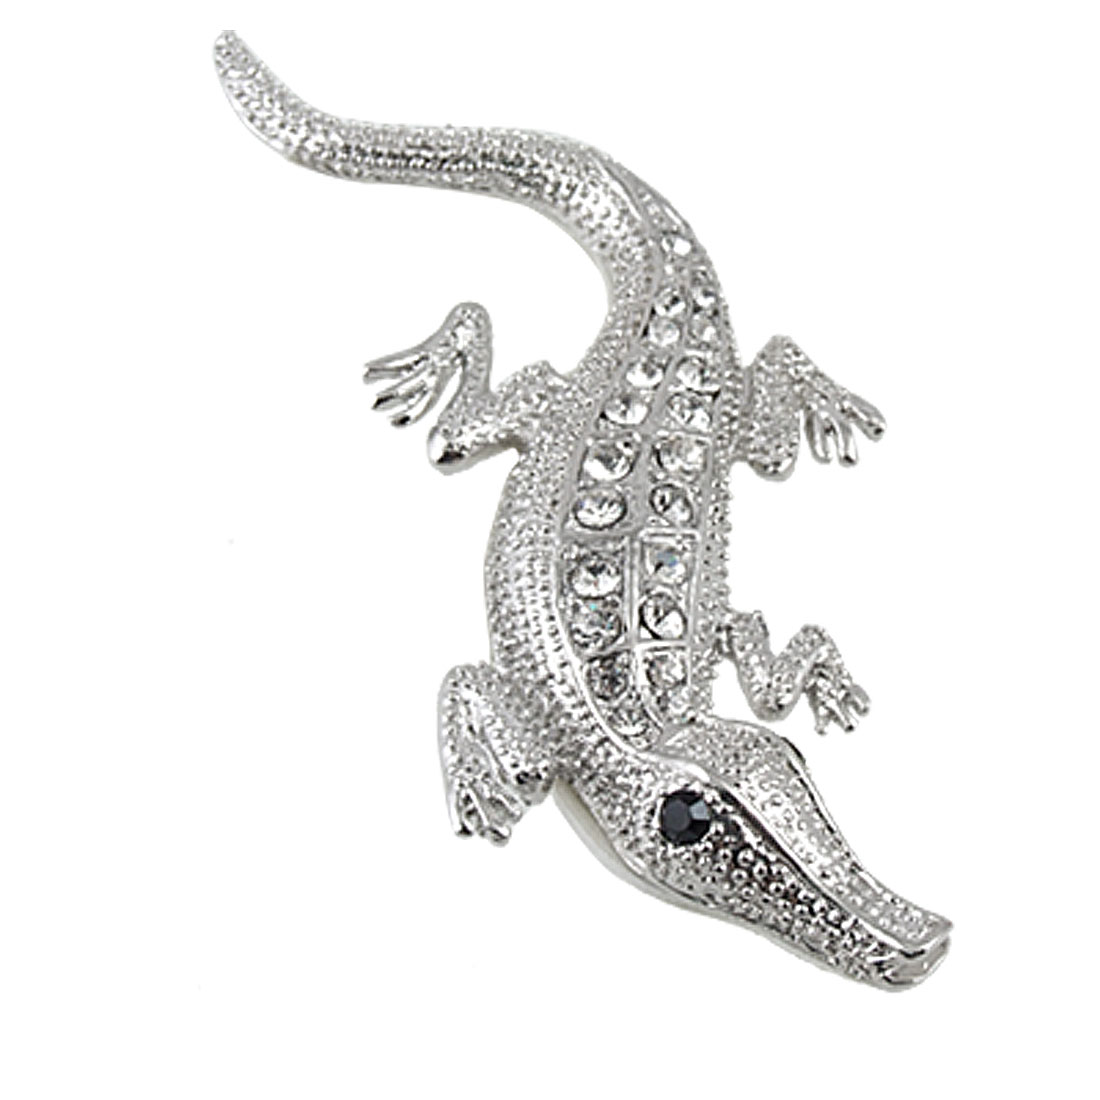 Car Silvery Crocodile Style Rhinestone 3D Stickers Decoration